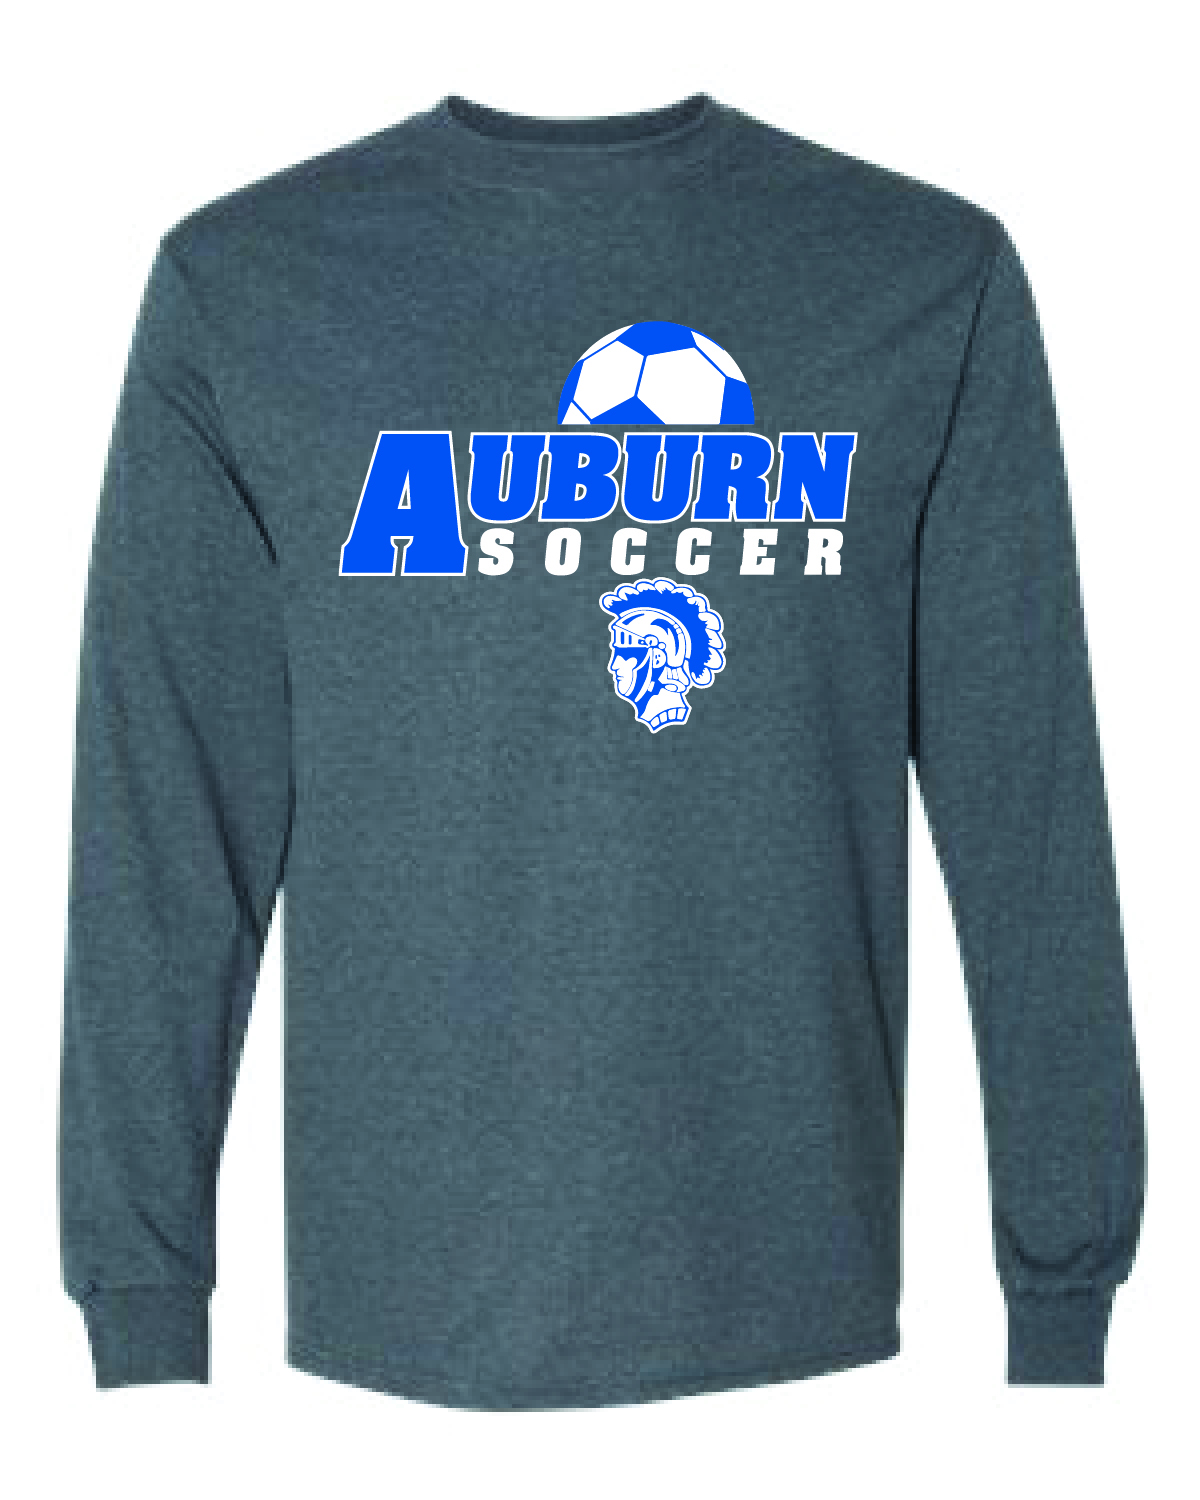 AUBURN SOCCER Short Long Sleeve Tee